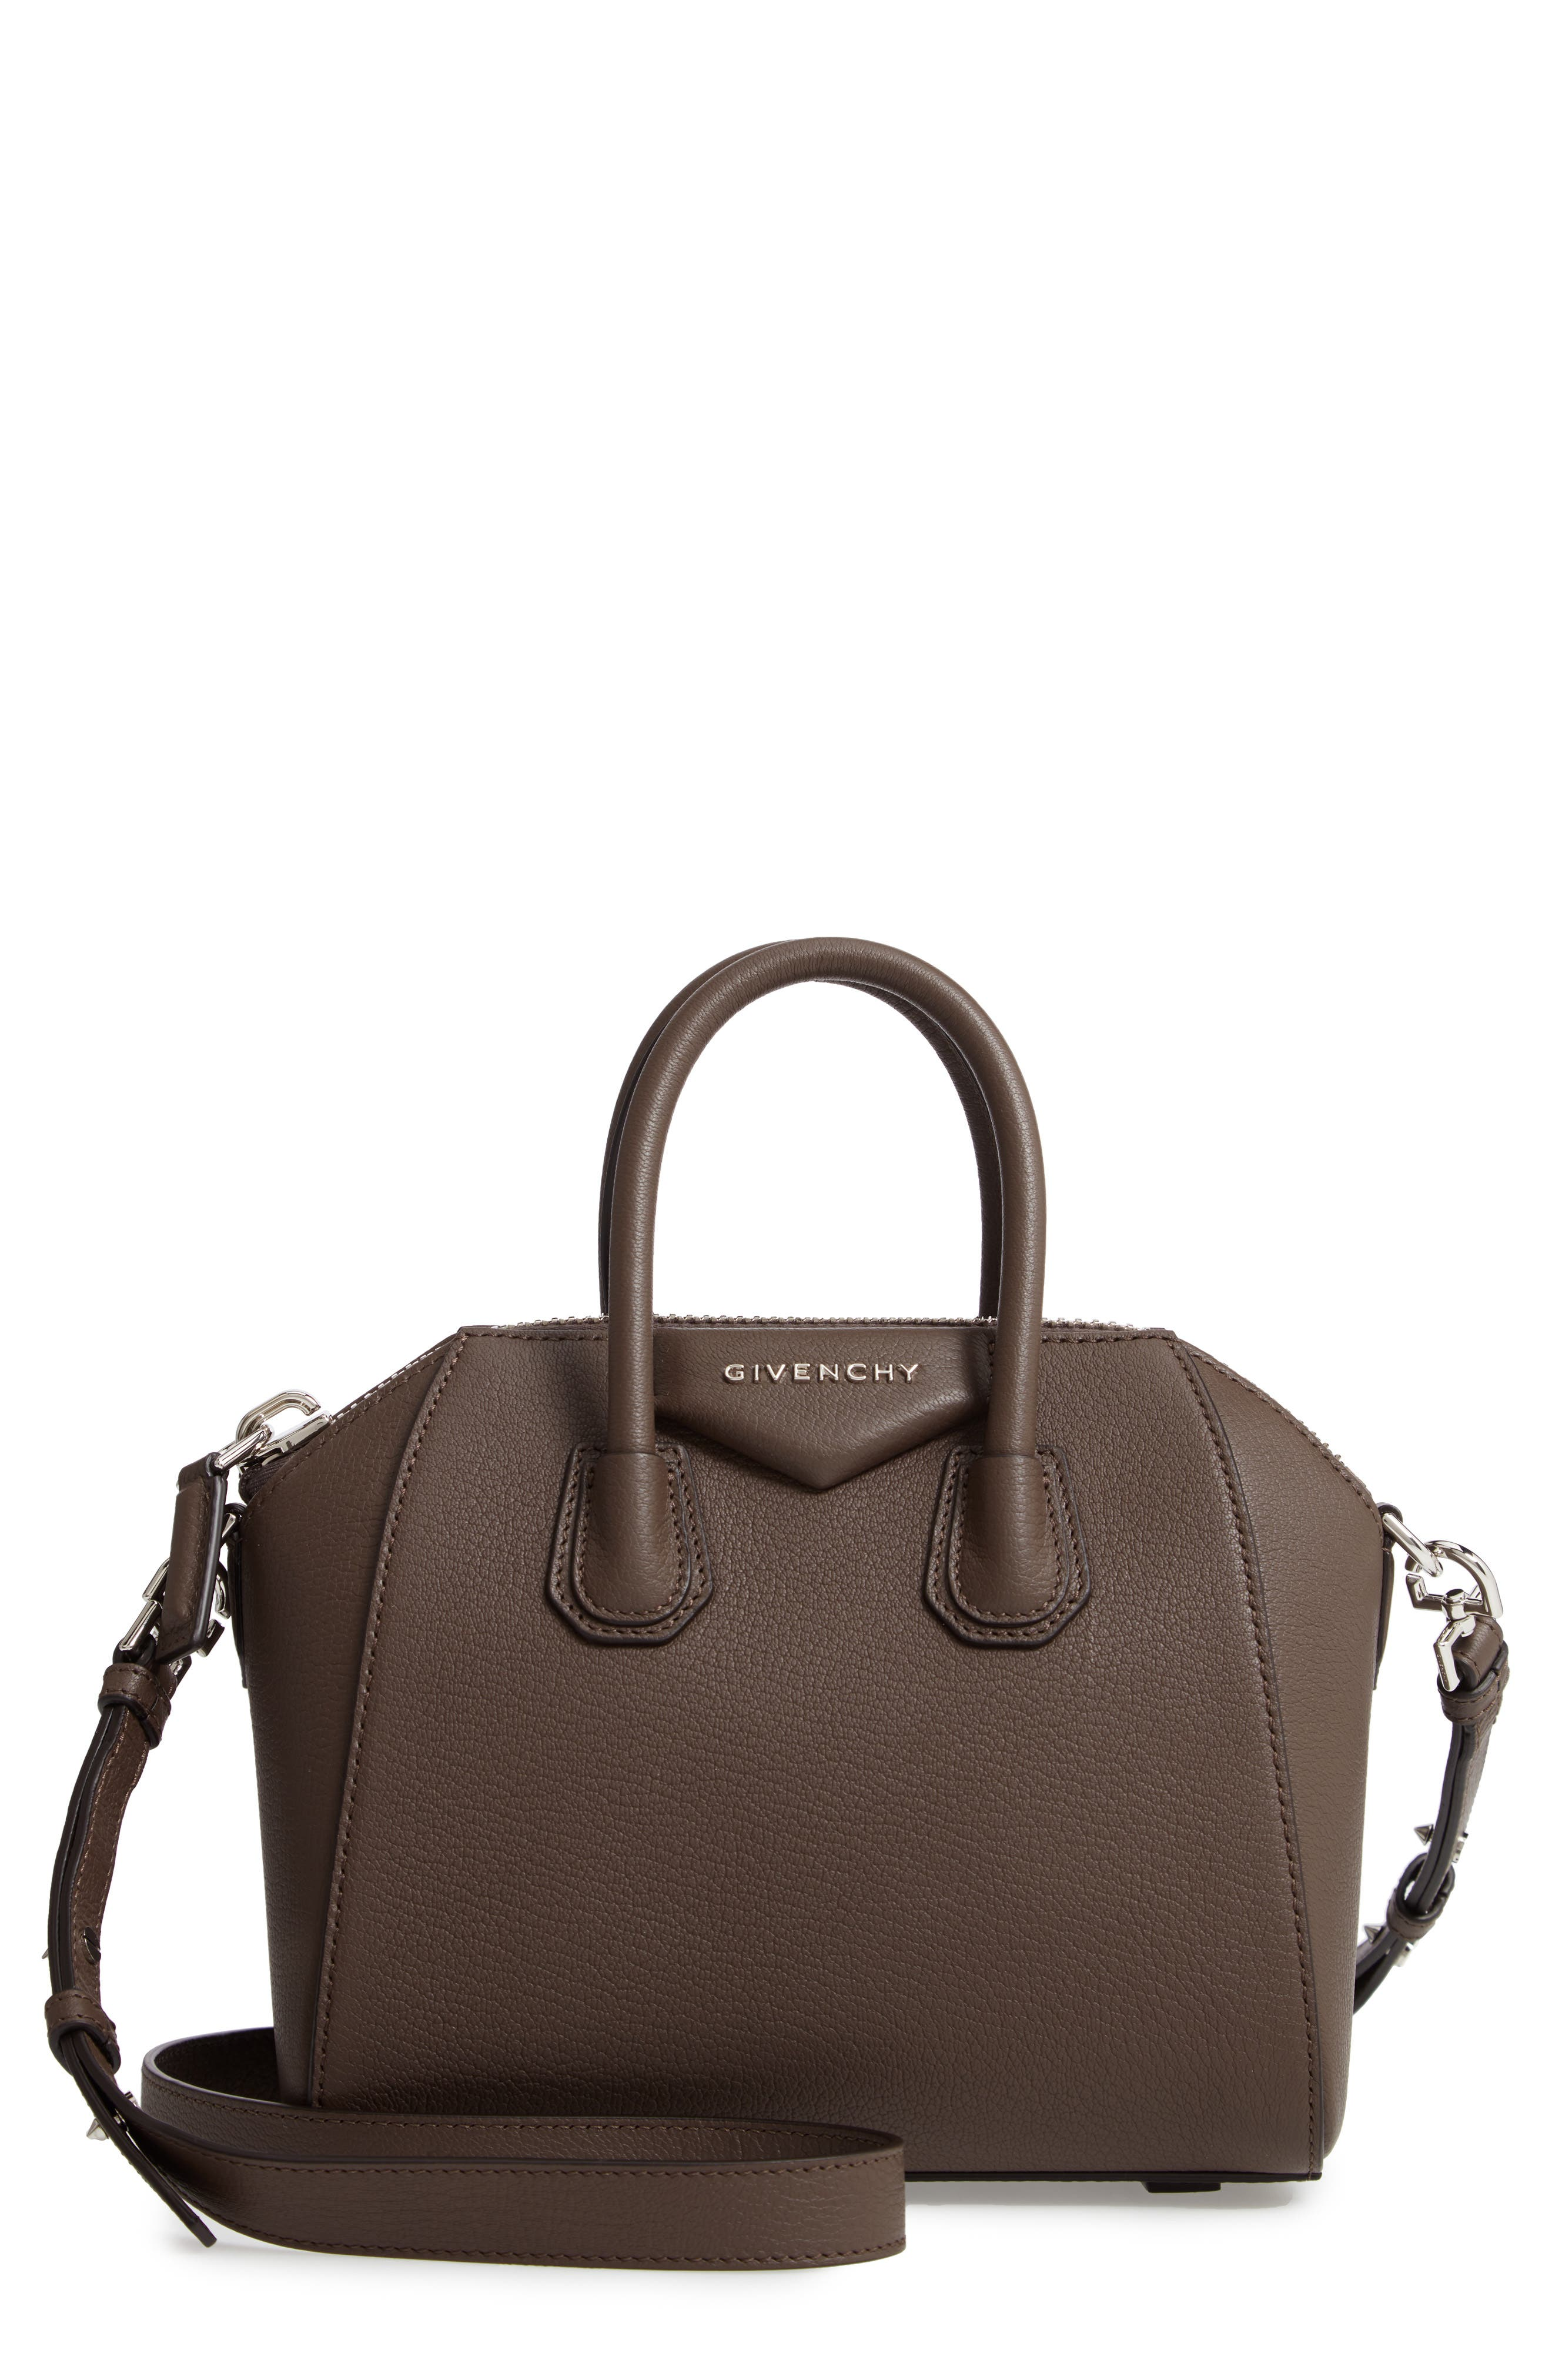 'Mini Antigona' Sugar Leather Satchel,                             Main thumbnail 1, color,                             HEATHER GREY